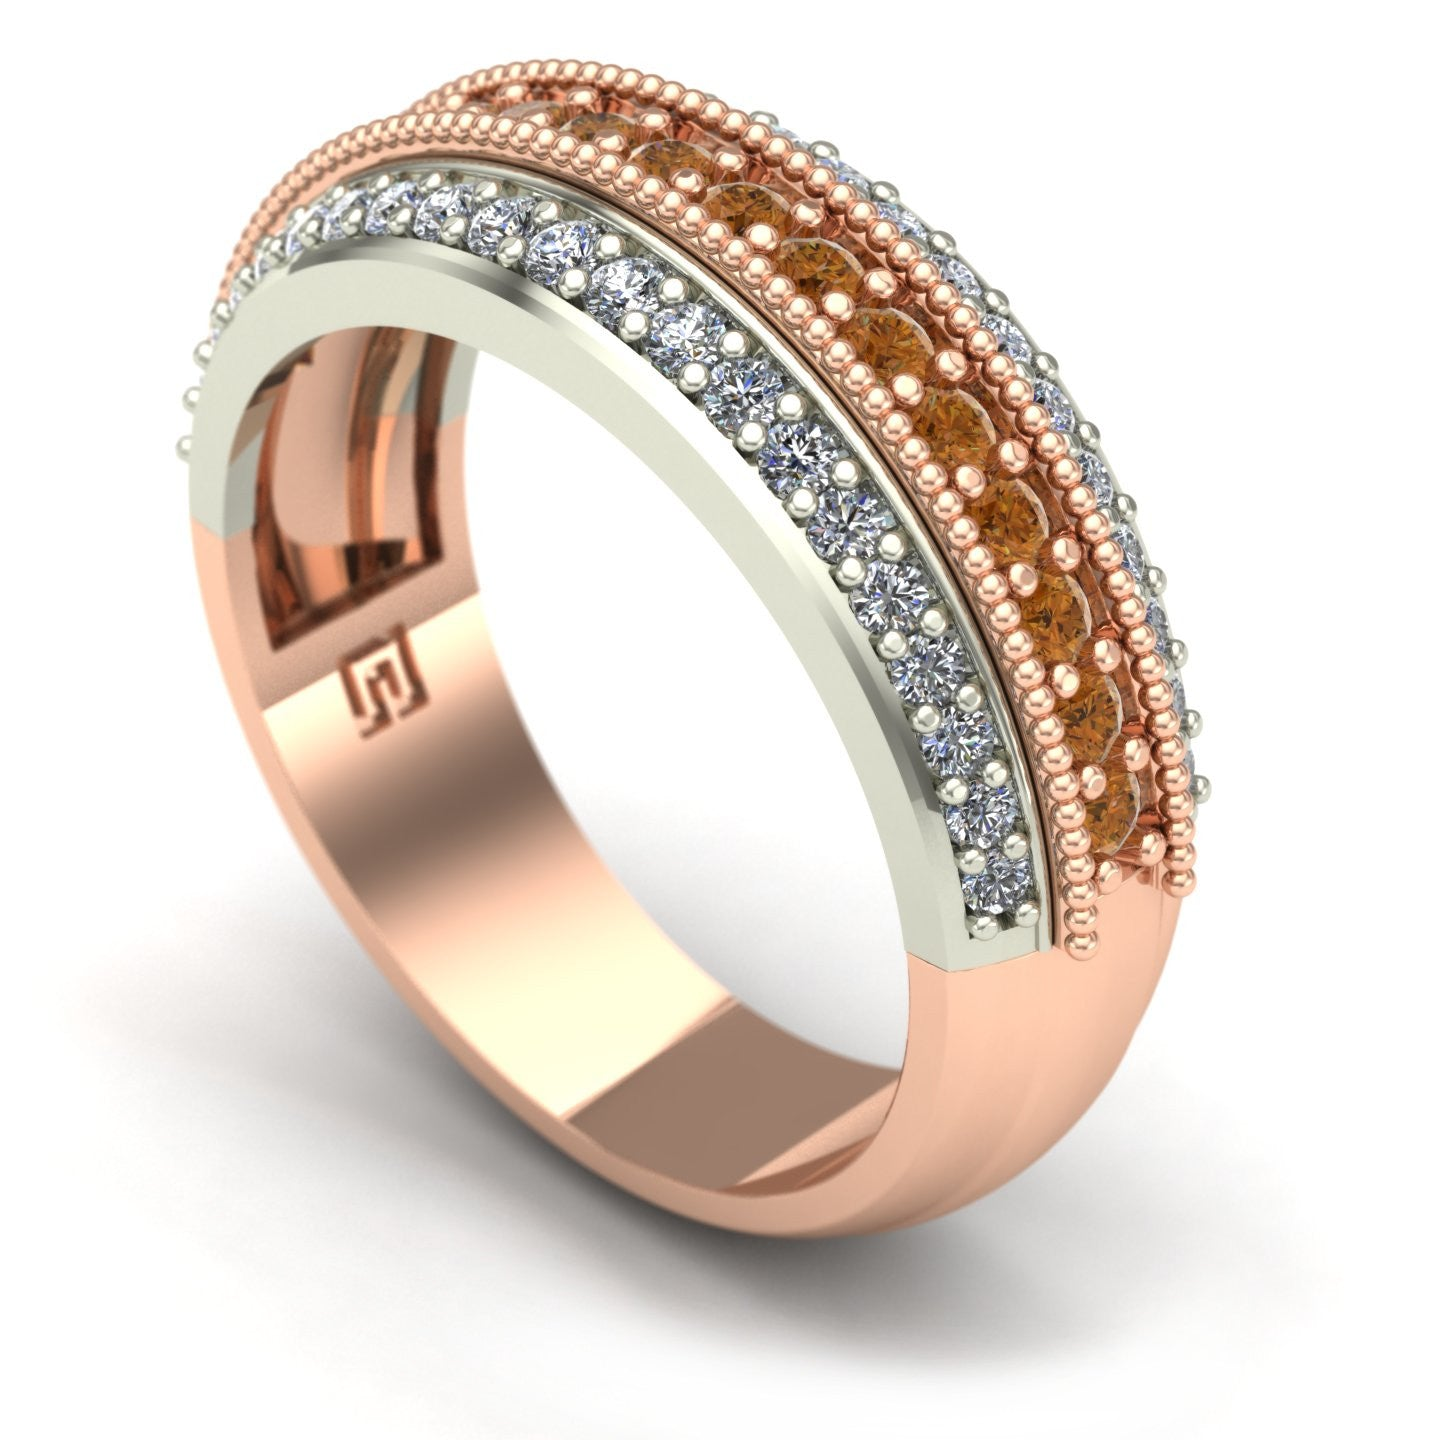 Cognac and white diamond band in 14k rose and white gold